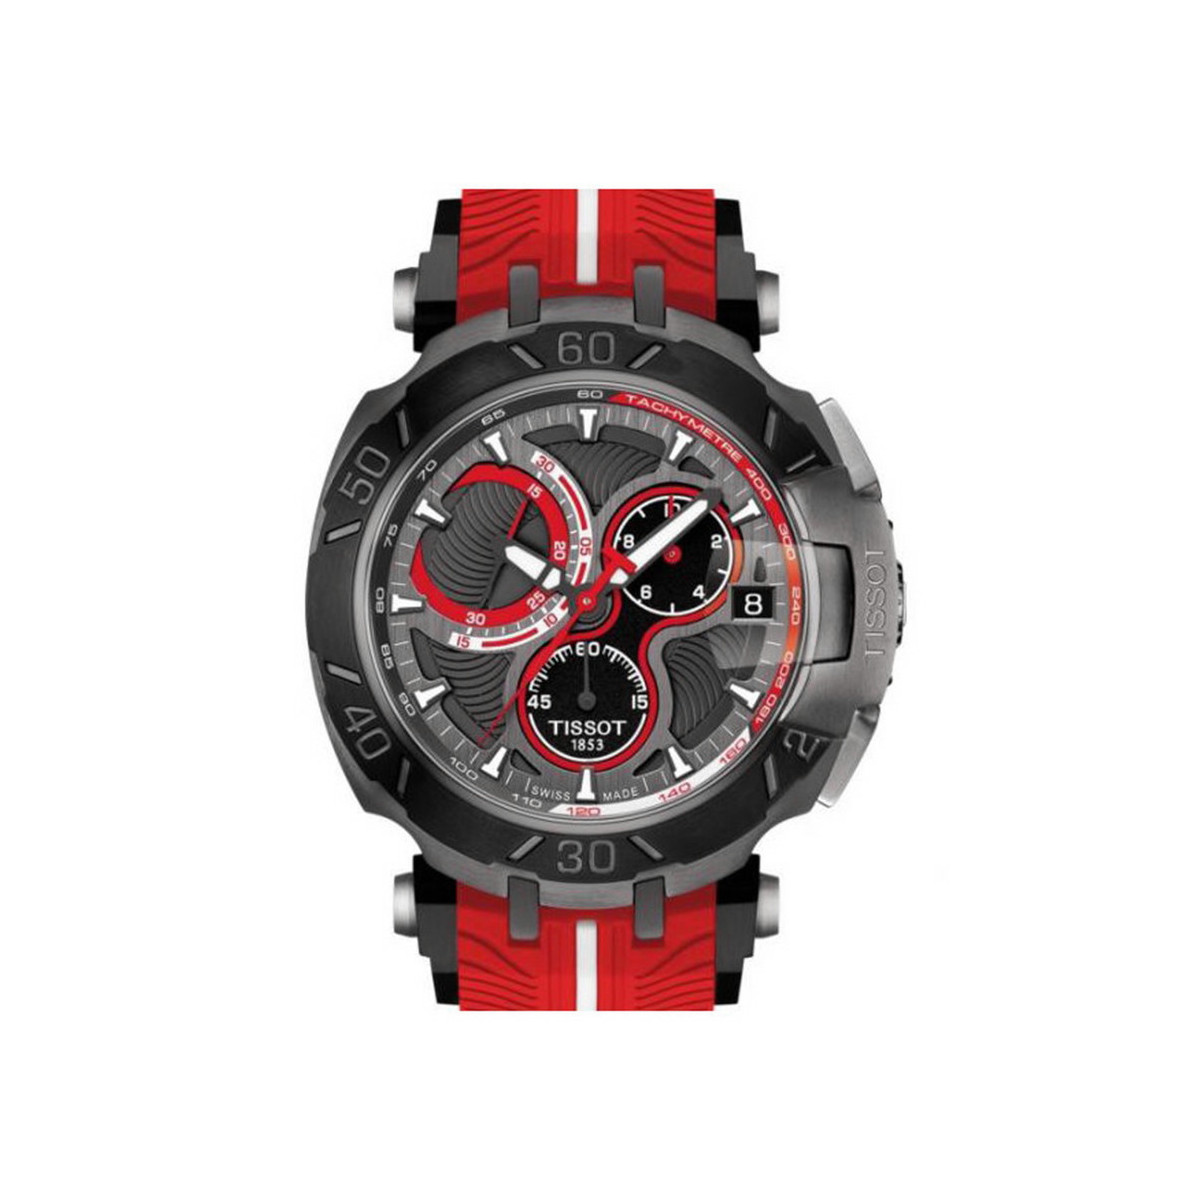 WATCHTISSOT T-RACE LIMITED EDITION JORGE LORENZO